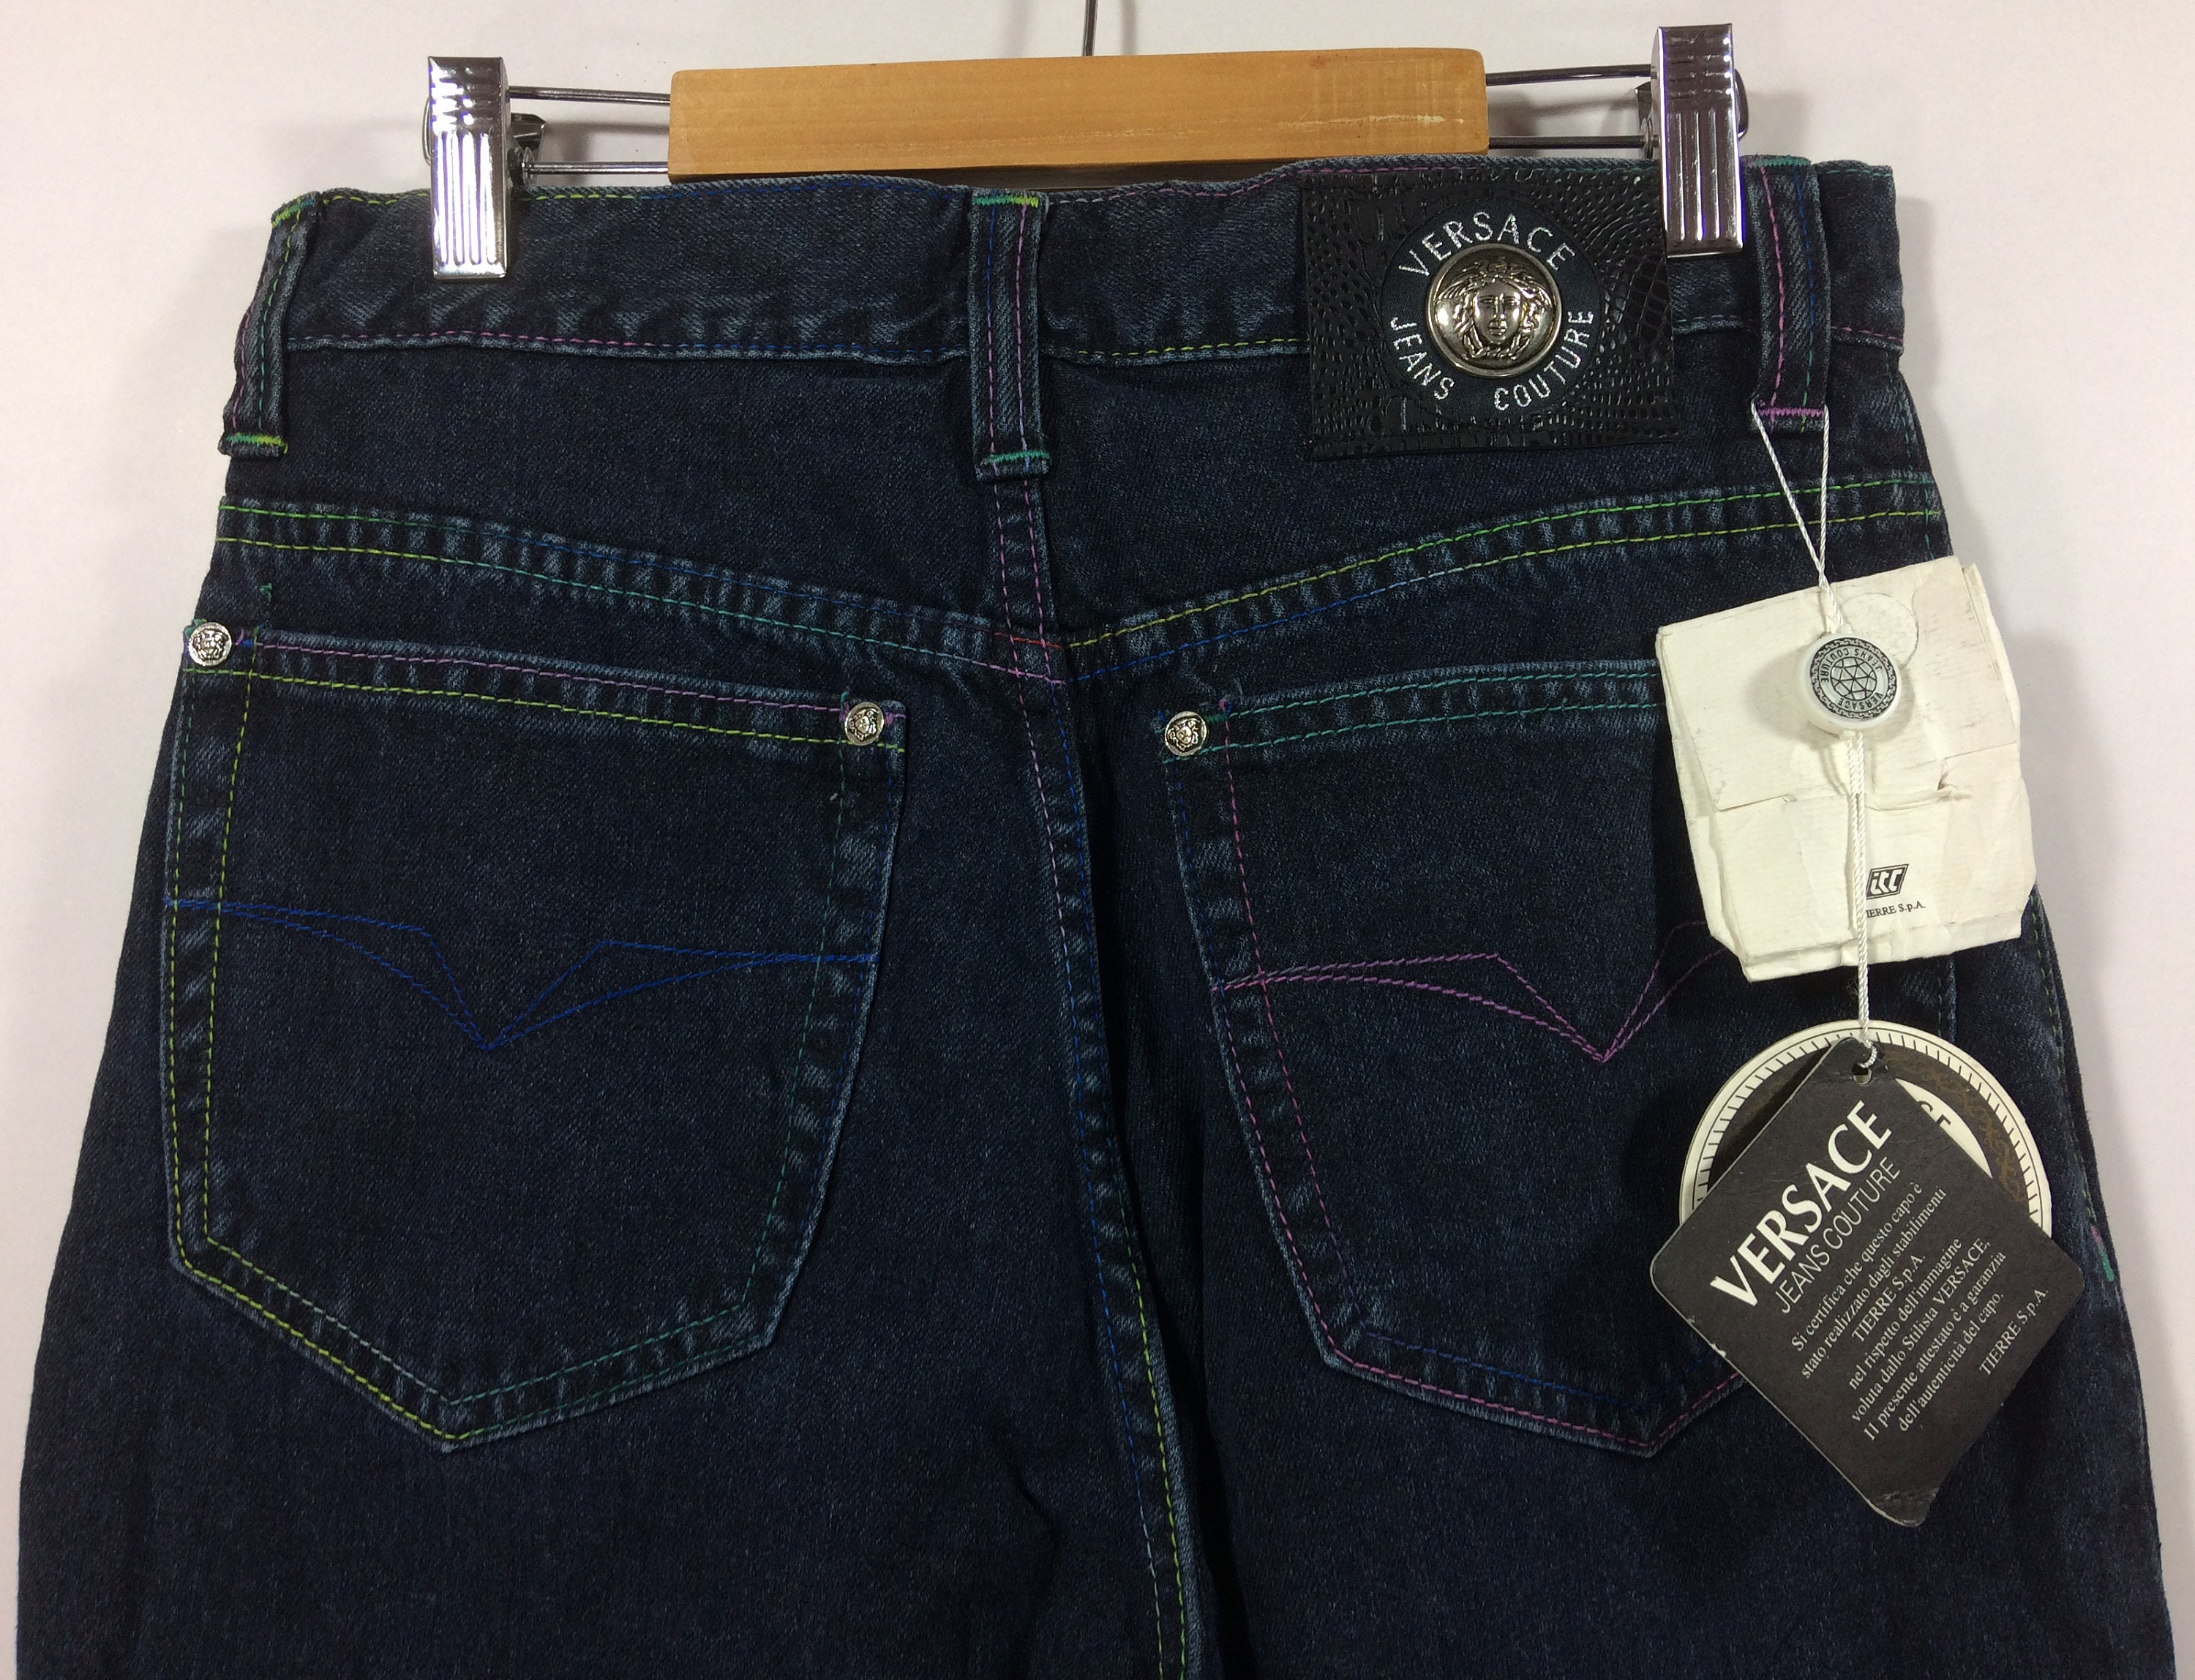 Vintage versace jeans couture with tag pants jeans high etsy jpg 3000x2296  Versace clothing tag 40dc07c30fbb2